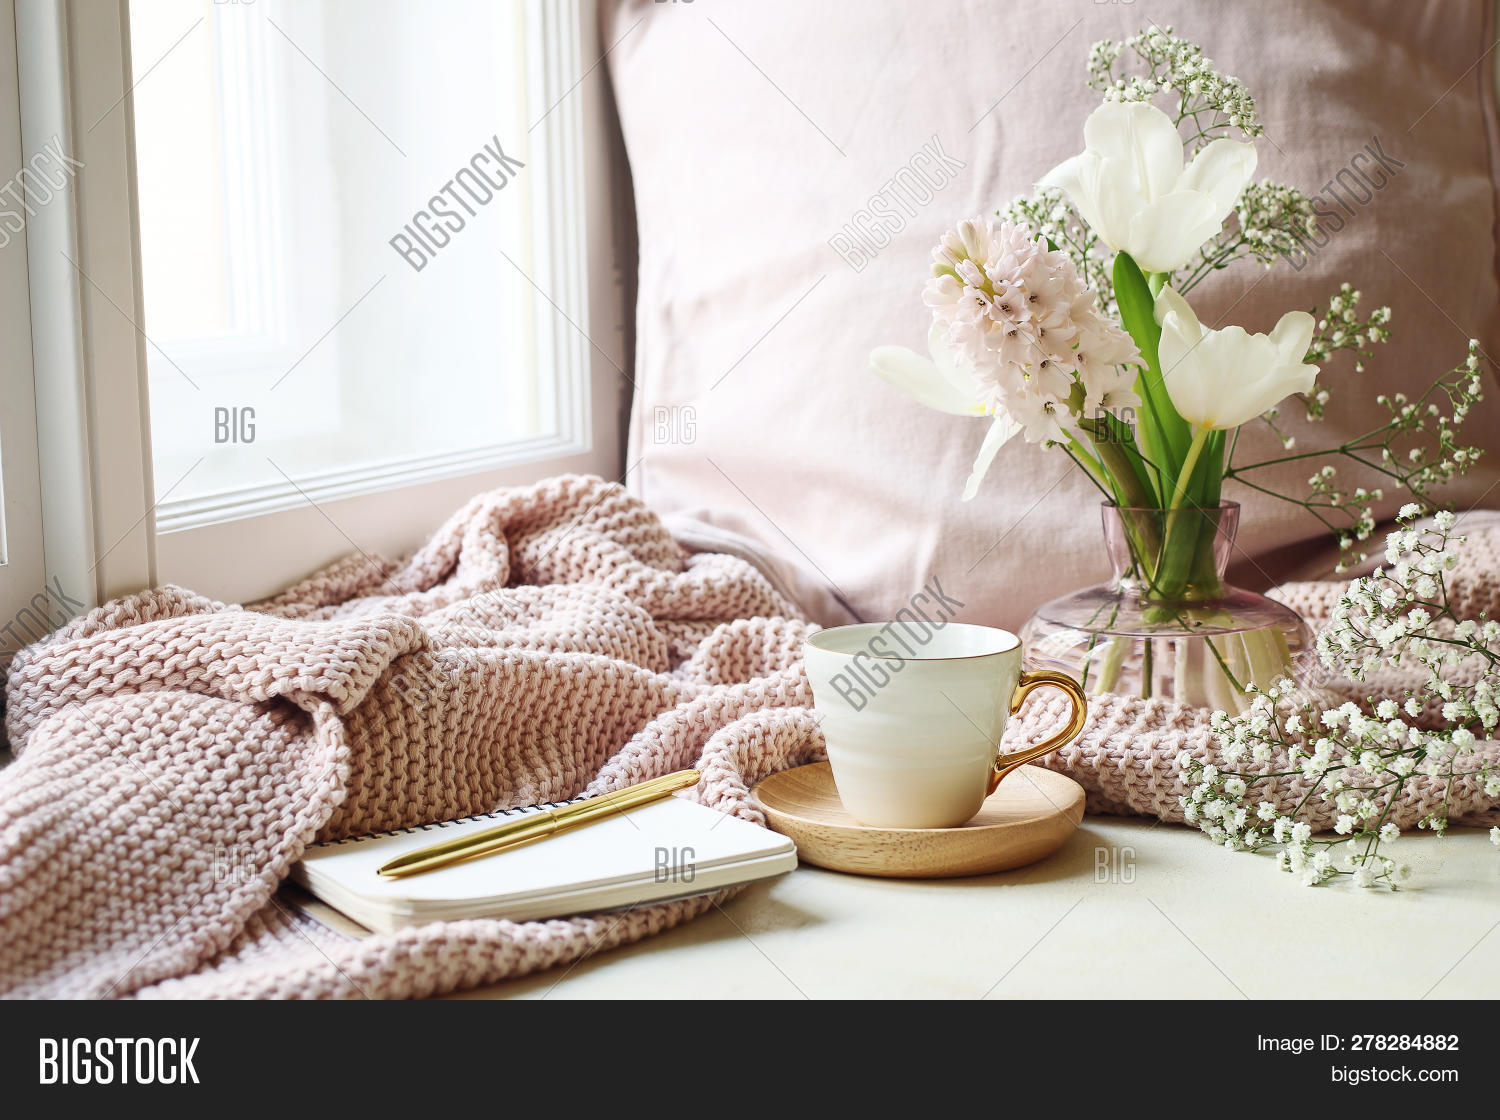 background,beautiful,beverage,bouquet,break,breakfast,bright,coffee,cup,day,drink,easter,flower,golden,gypsophila,holiday,home,hot,hyacinth,indoors,interior,leaf,life,lifestyle,living,morning,mug,nature,notebook,pen,pillow,pink,plaid,plant,relax,retro,room,scene,season,spring,stationery,table,tea,tulips,vase,vintage,white,window,windowsill